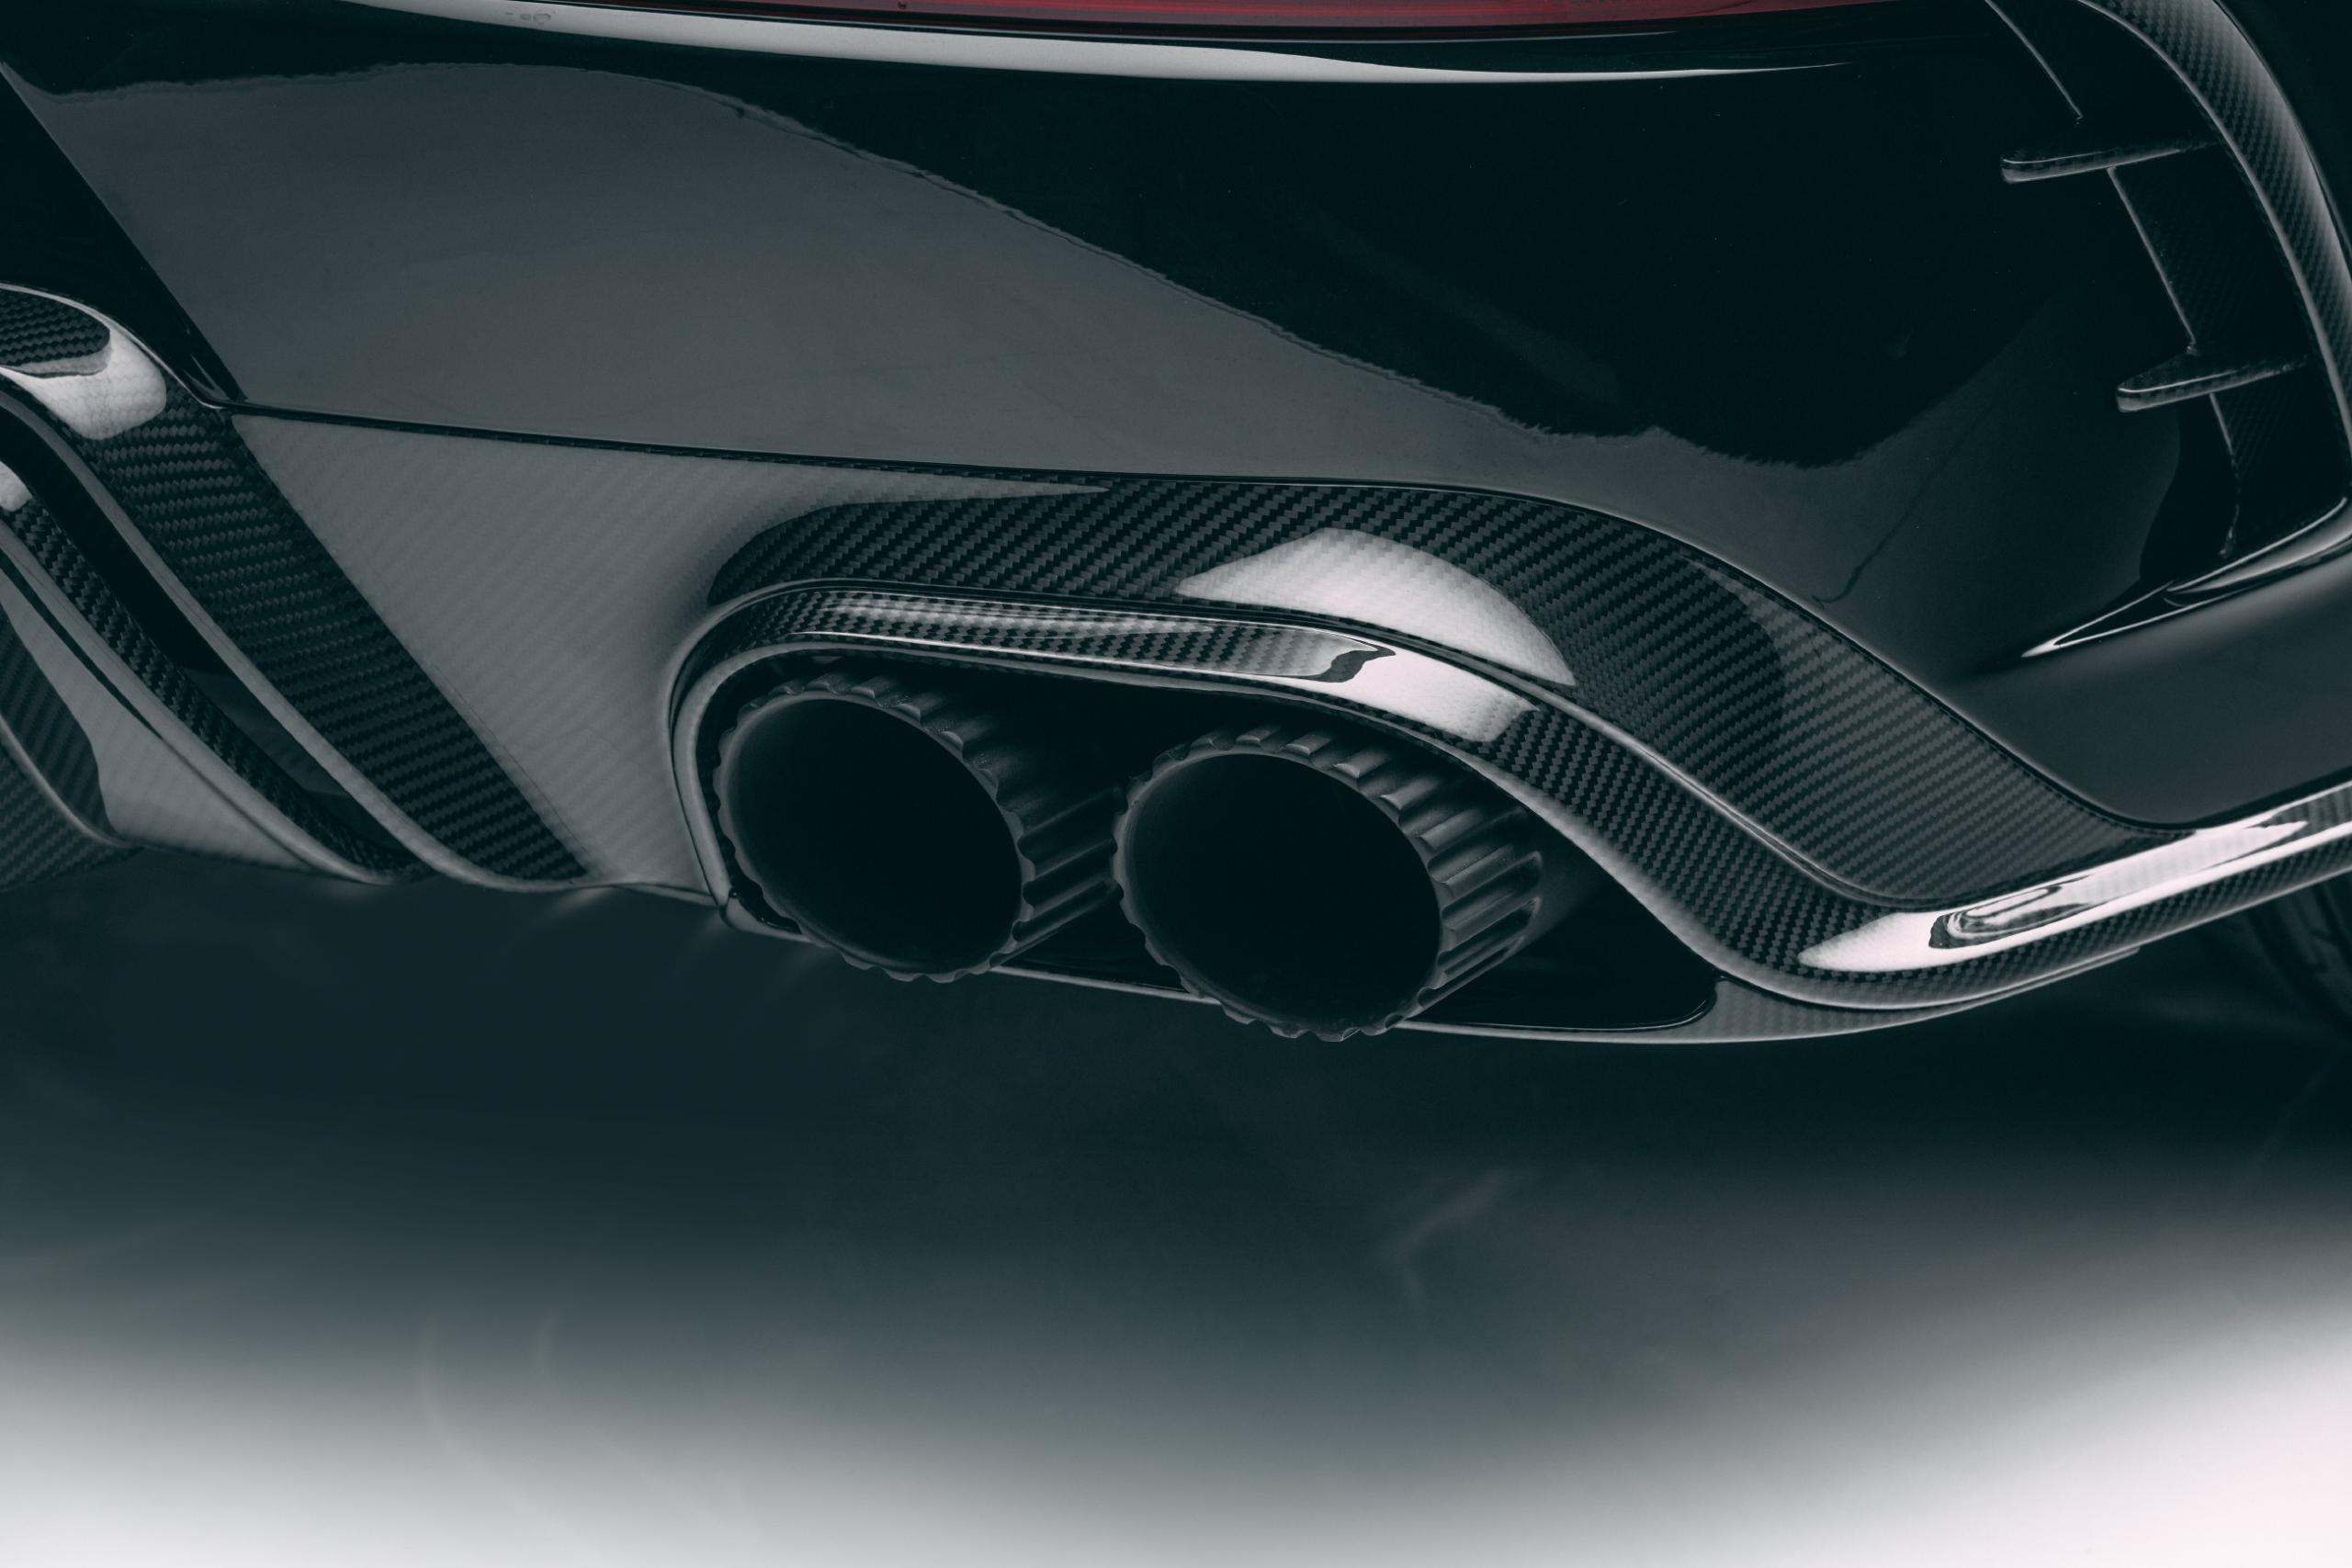 mansory new bentayga wide body kit carbon fiber diffuser exhaust tips 2021